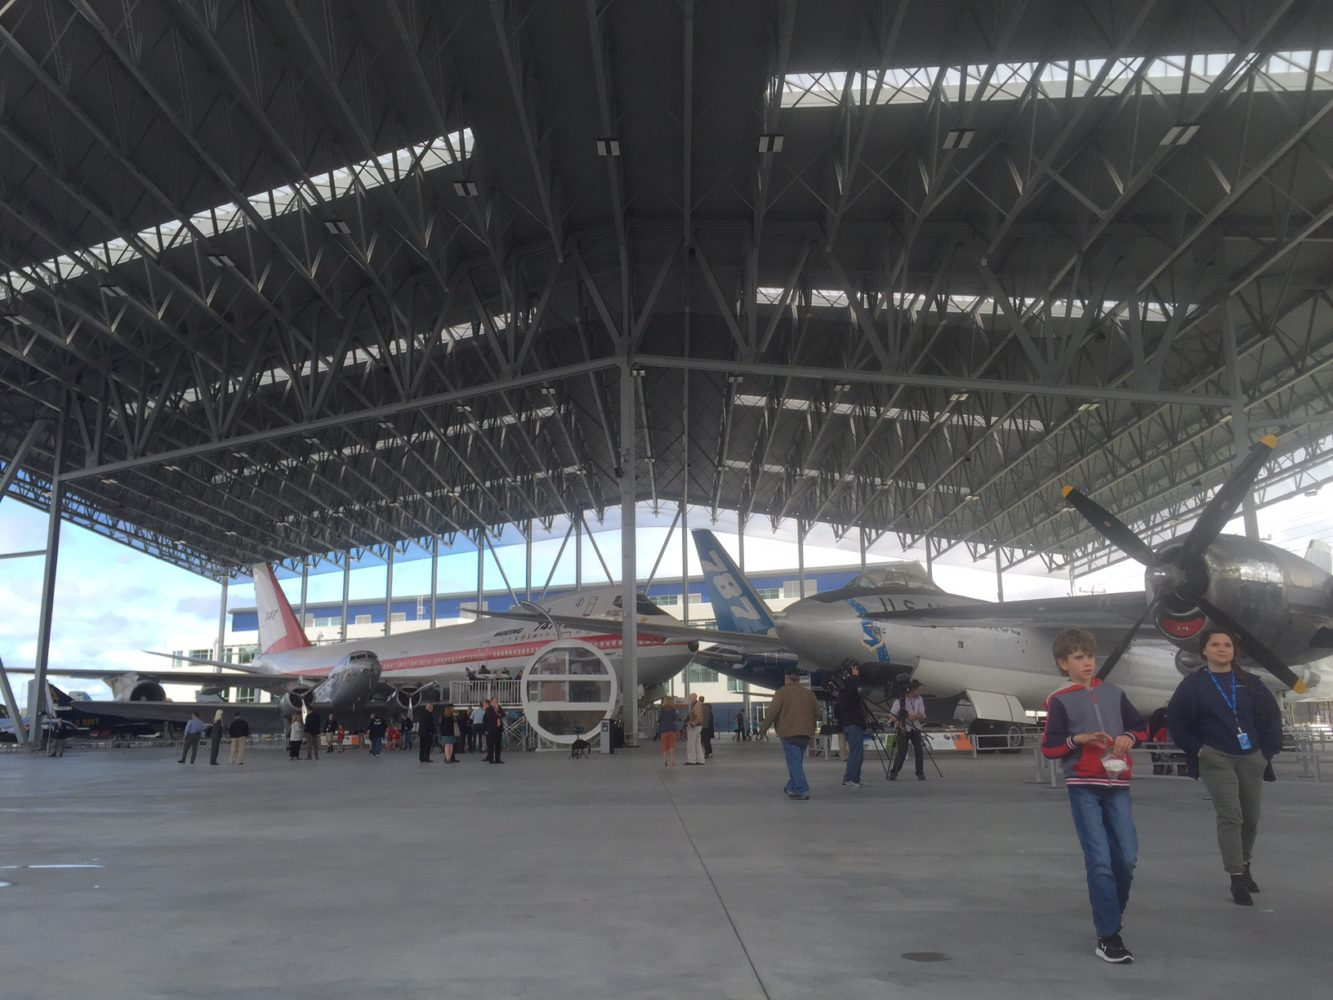 Giant new aviation pavilion at Seattle's Museum of Flight